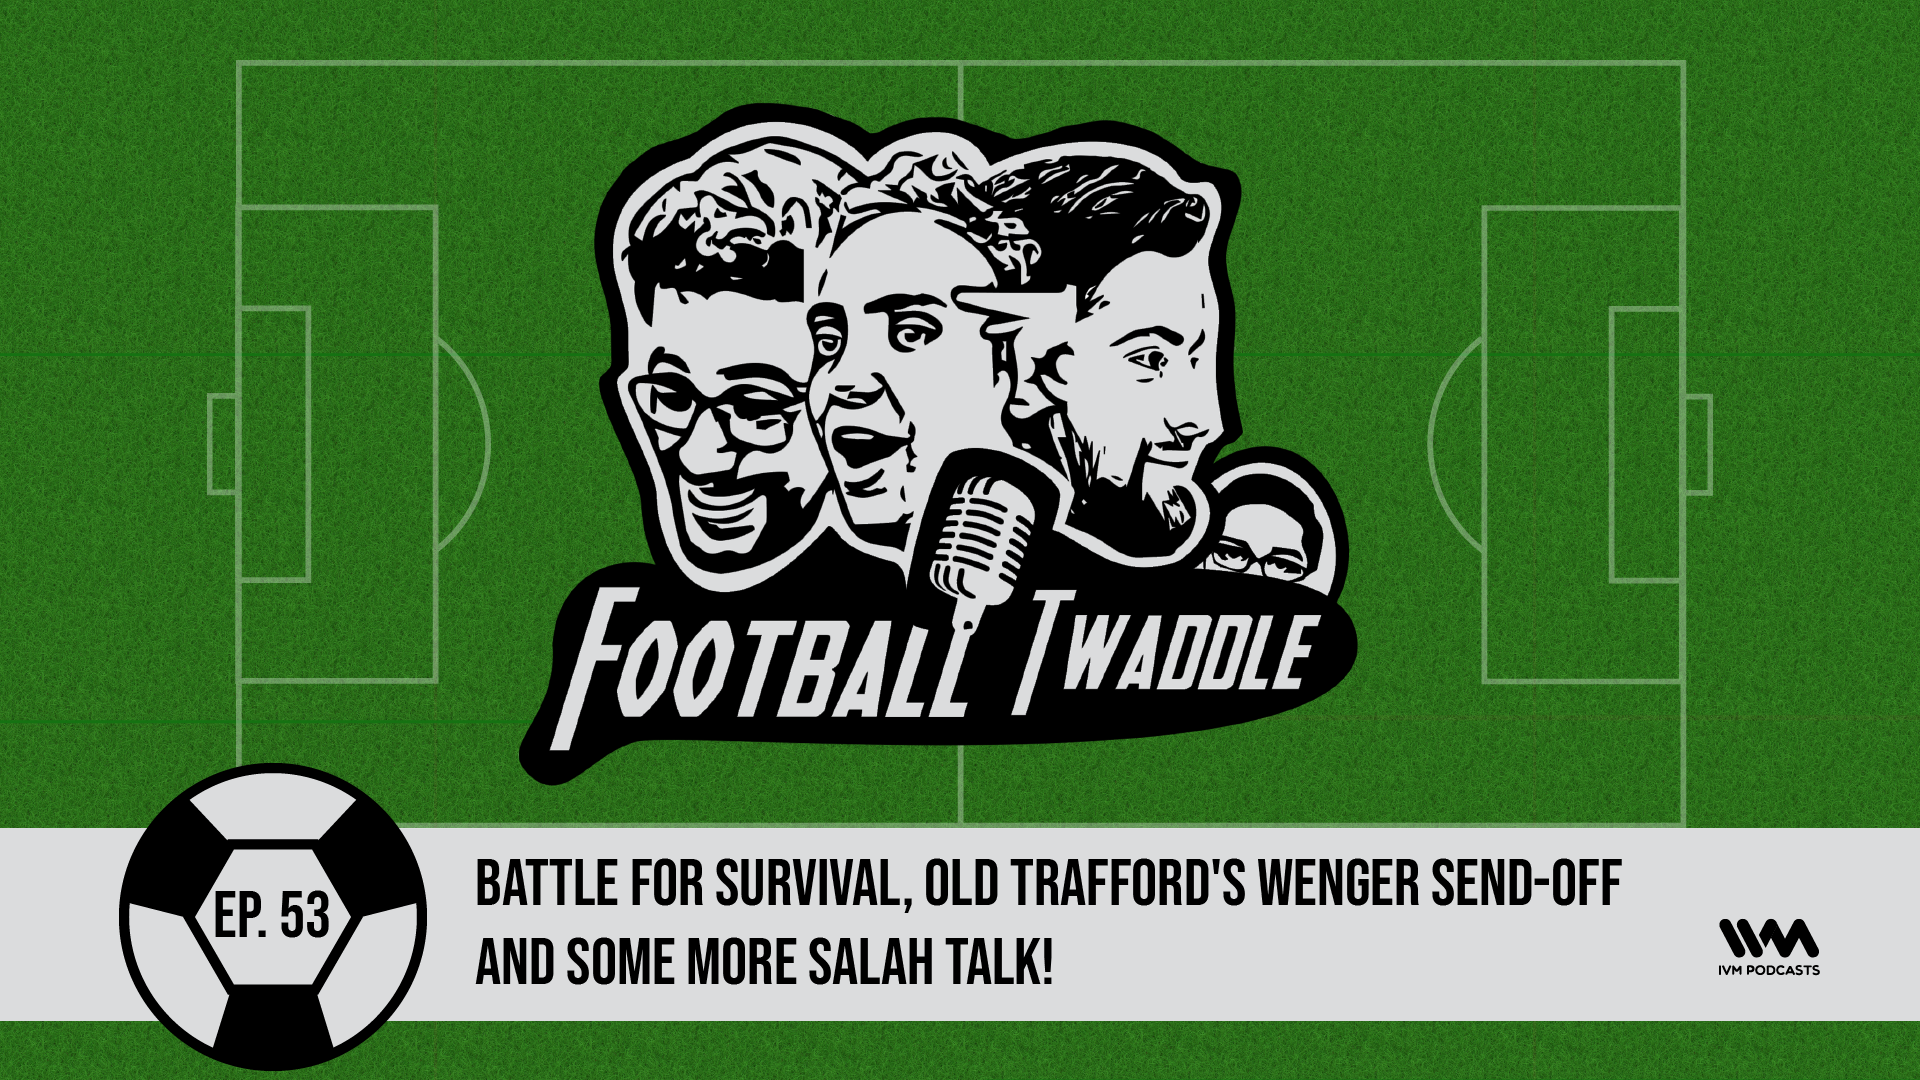 FootballTwaddleEpisode53.png